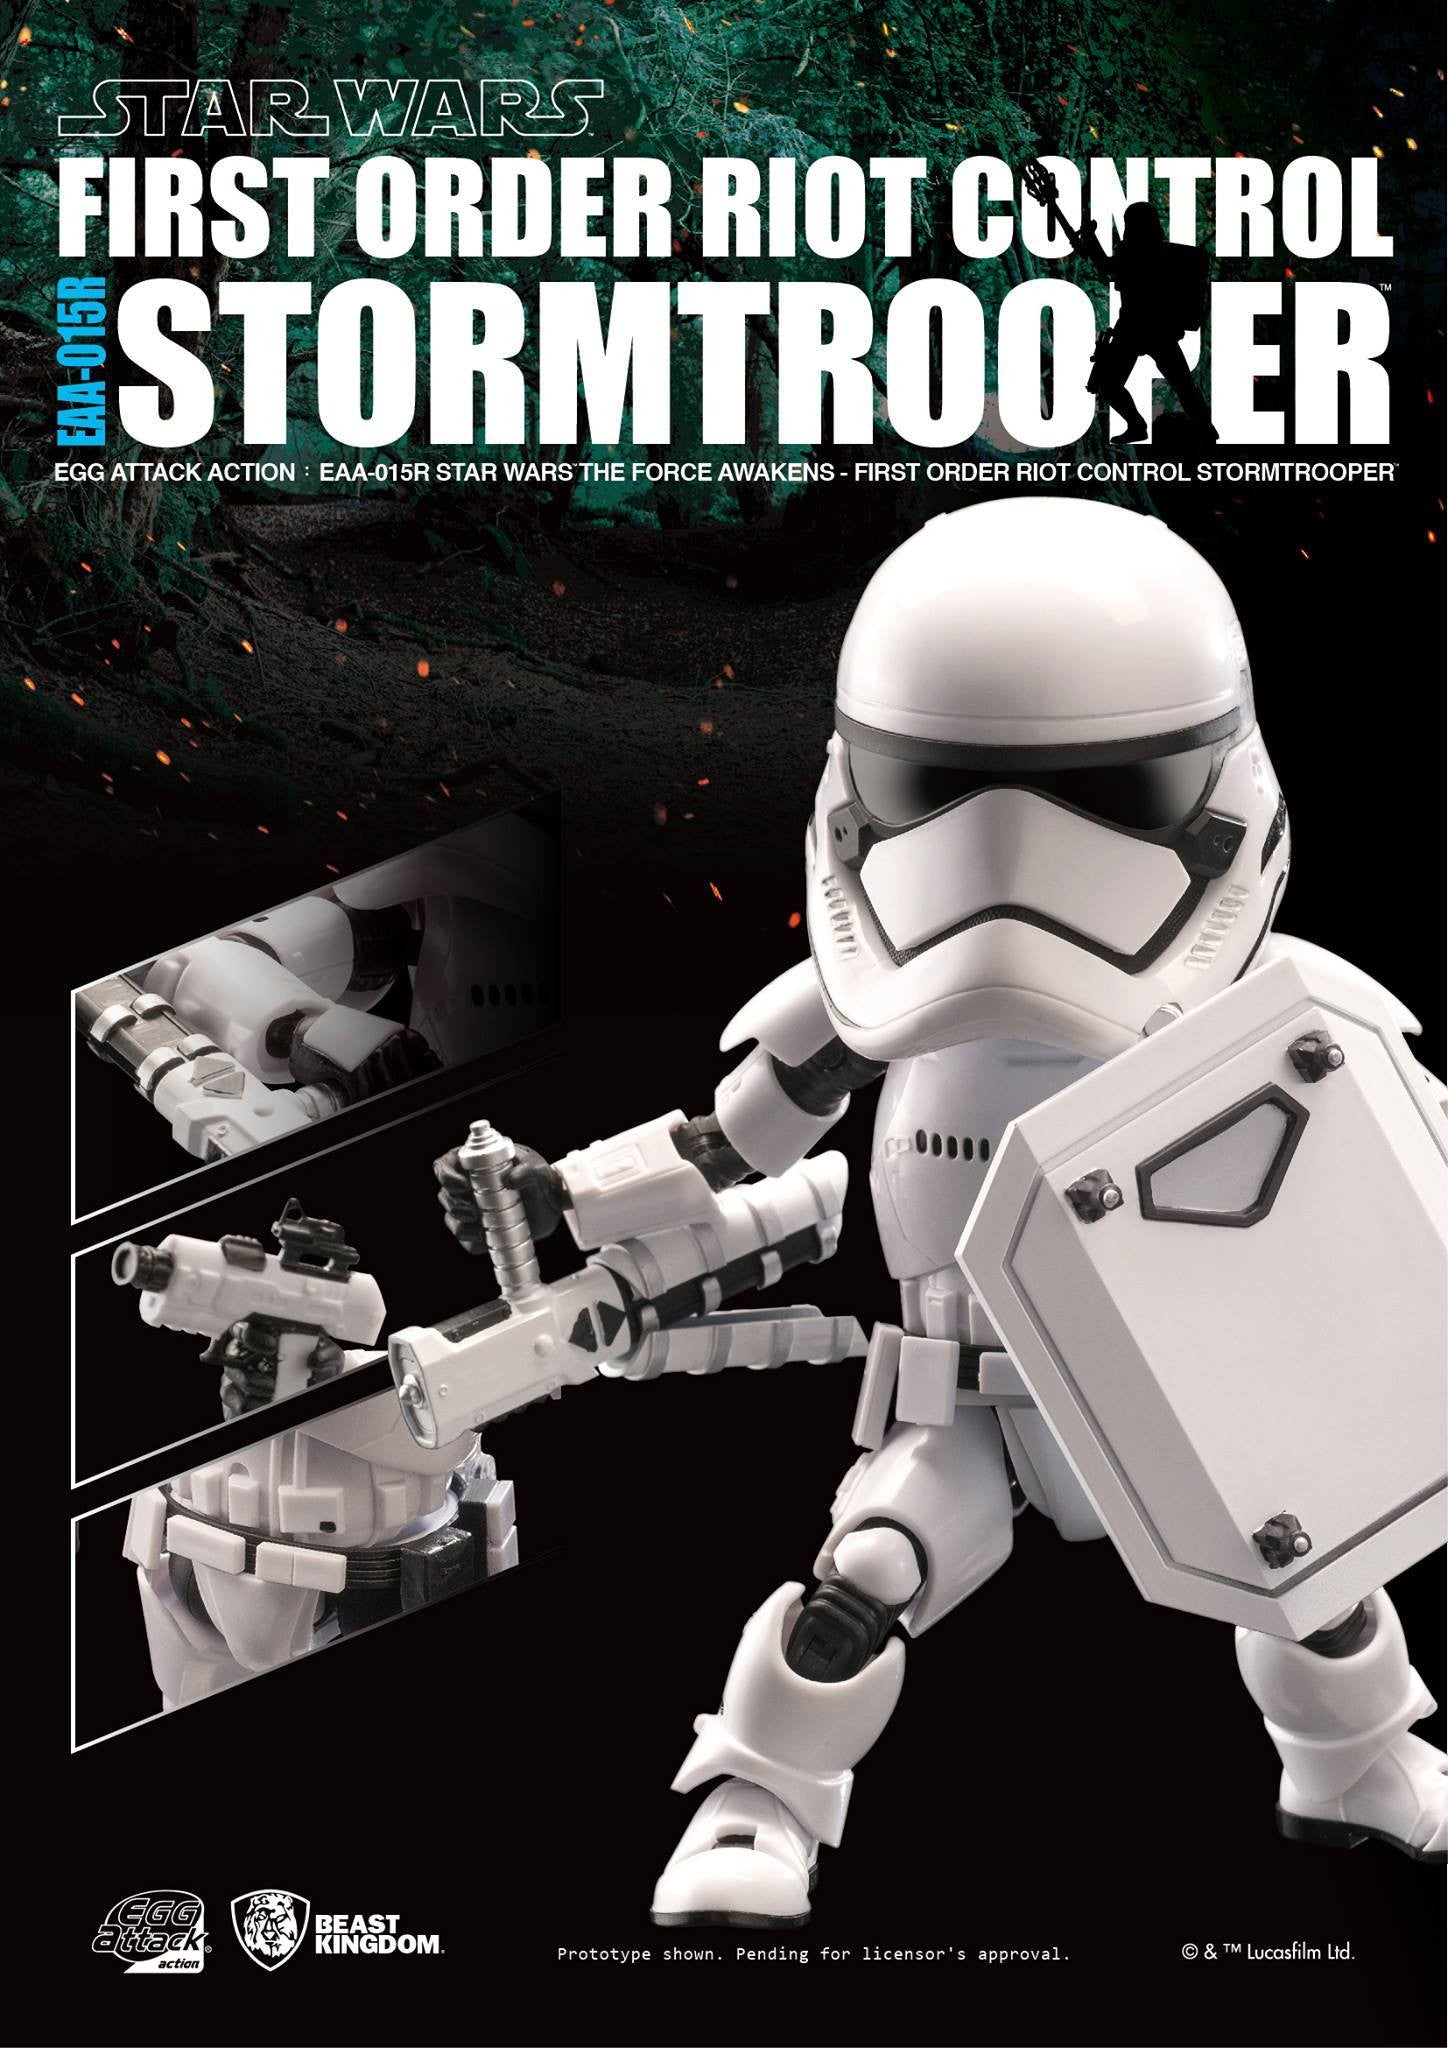 Egg Attack Action - Star Wars: The Force Awakens - EAA-015R Riot Control Stormtrooper - Marvelous Toys - 5